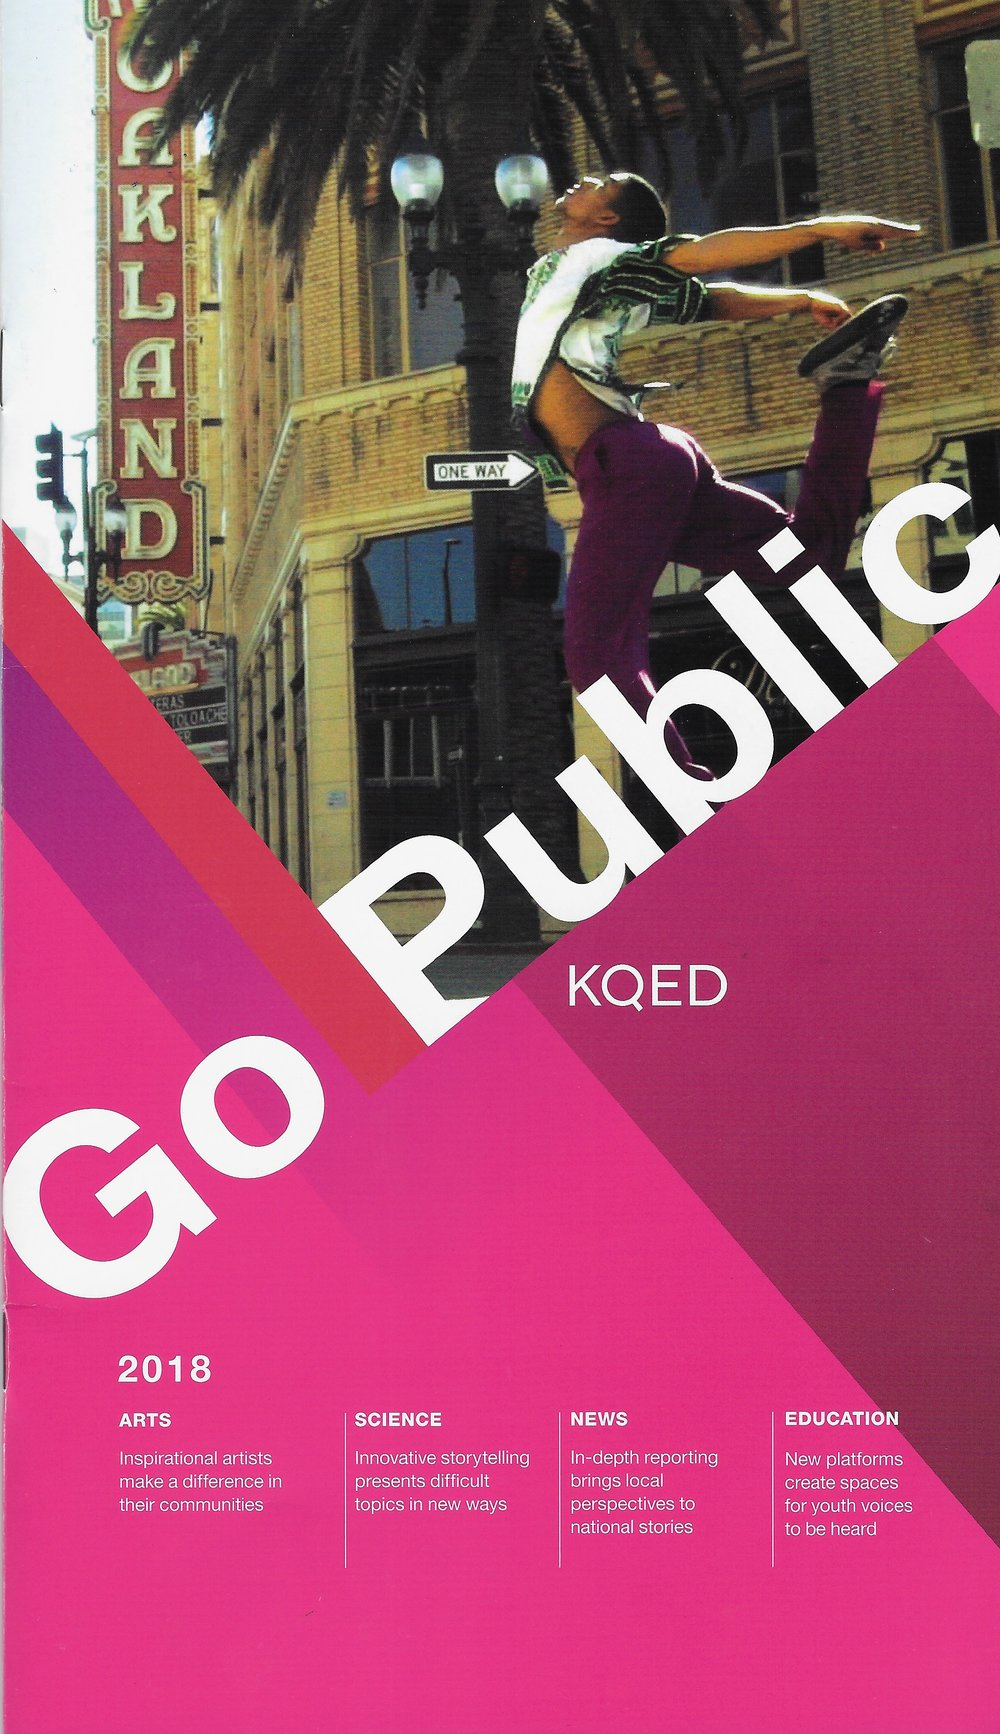 KQED cover.jpeg